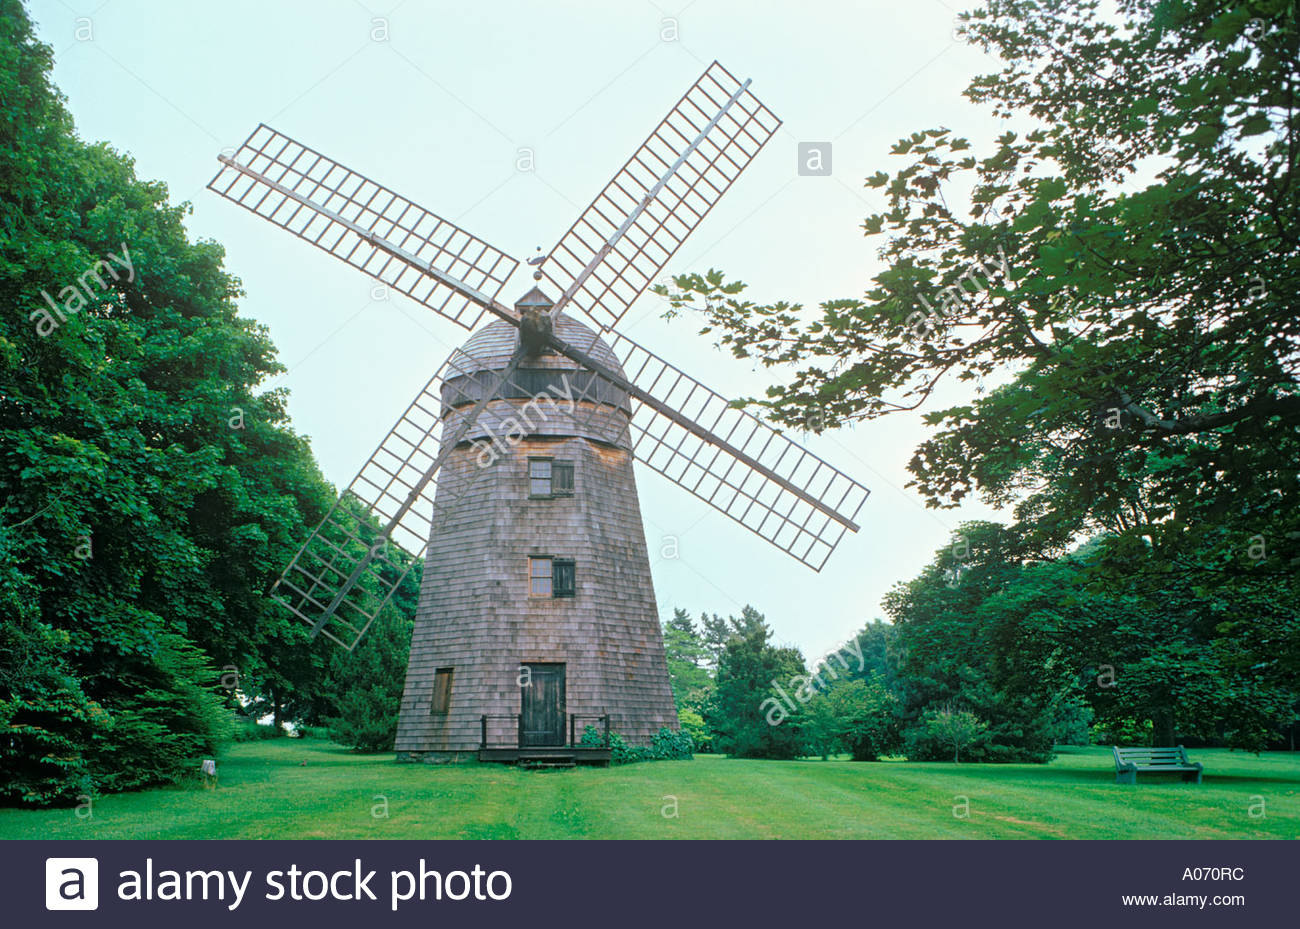 Beebe windmill on Long Island at Bridgehampton in the State of New York USAStock Photo